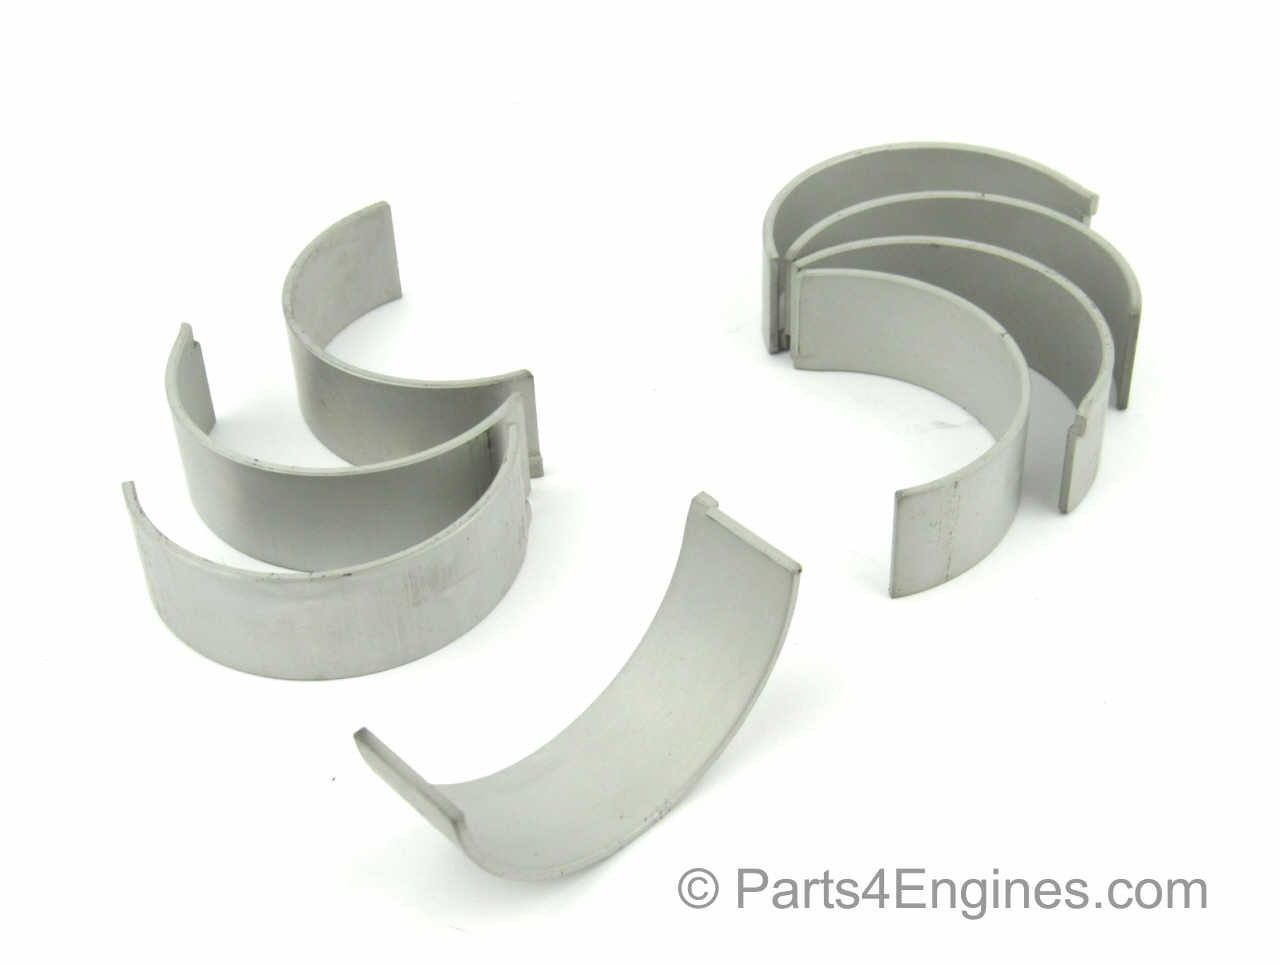 Volvo Penta TAMD22 Connecting rod bearings from parts4engines.com